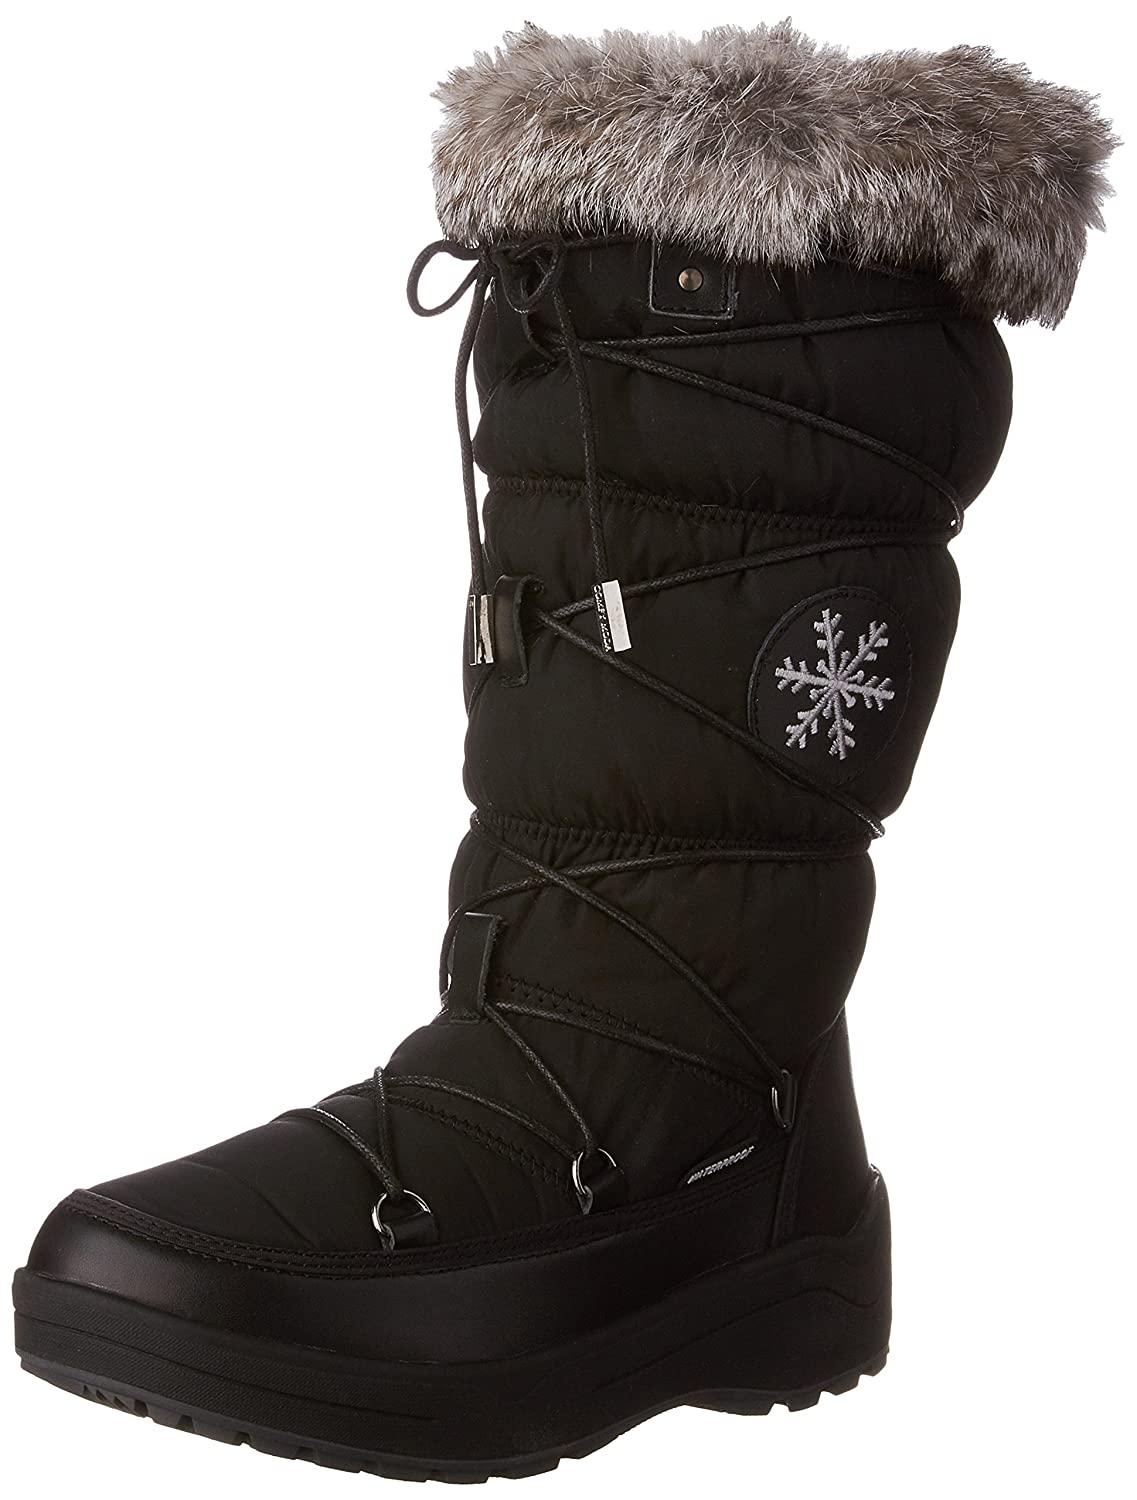 31bd3c9fd5ebd 50%OFF Comfy Moda Women's Winter Snow Ice Boots Leather ...